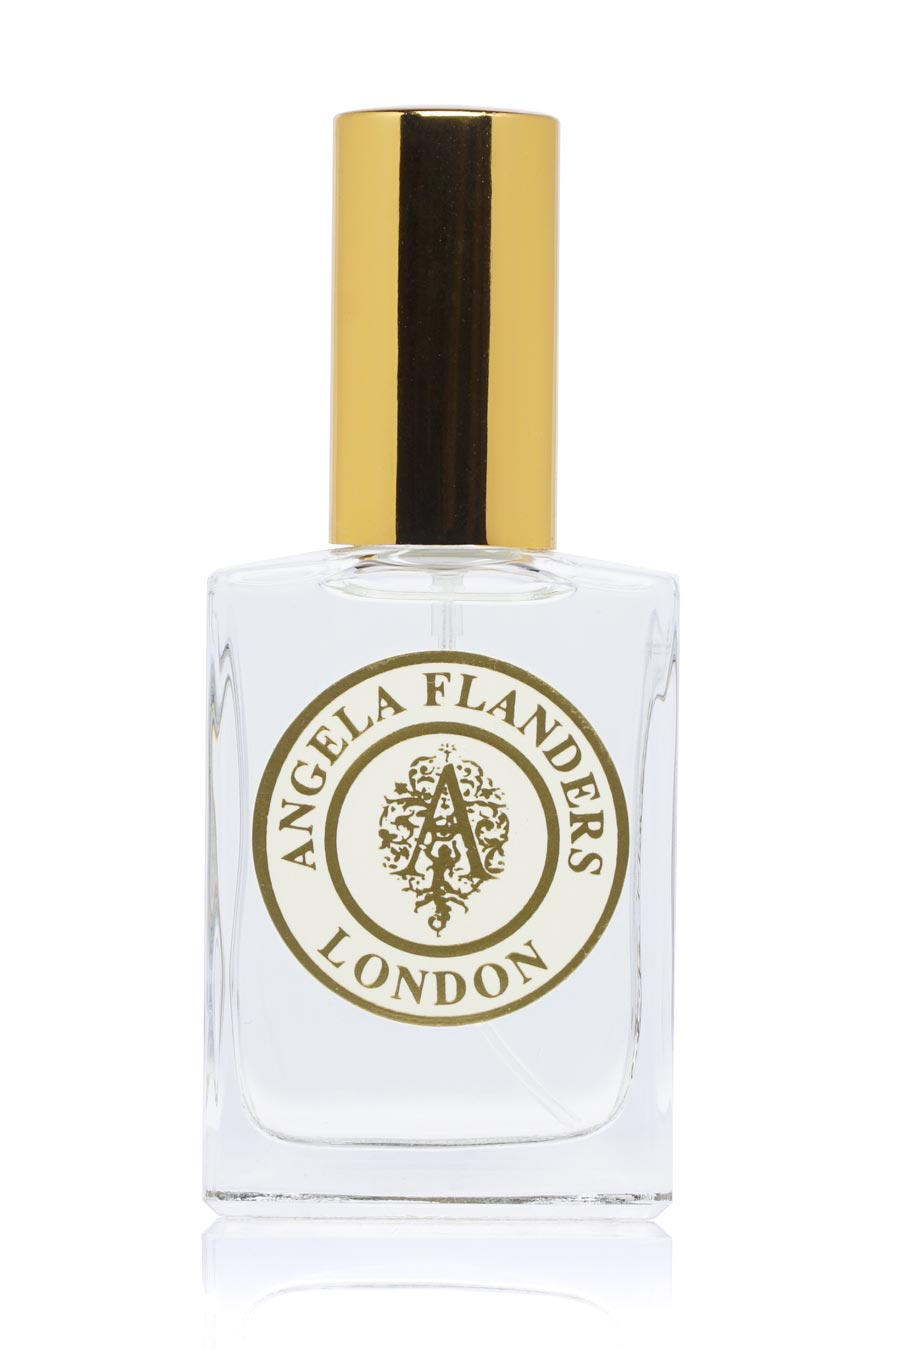 Angela Flanders White Flowers Eau de Toilette 30ml